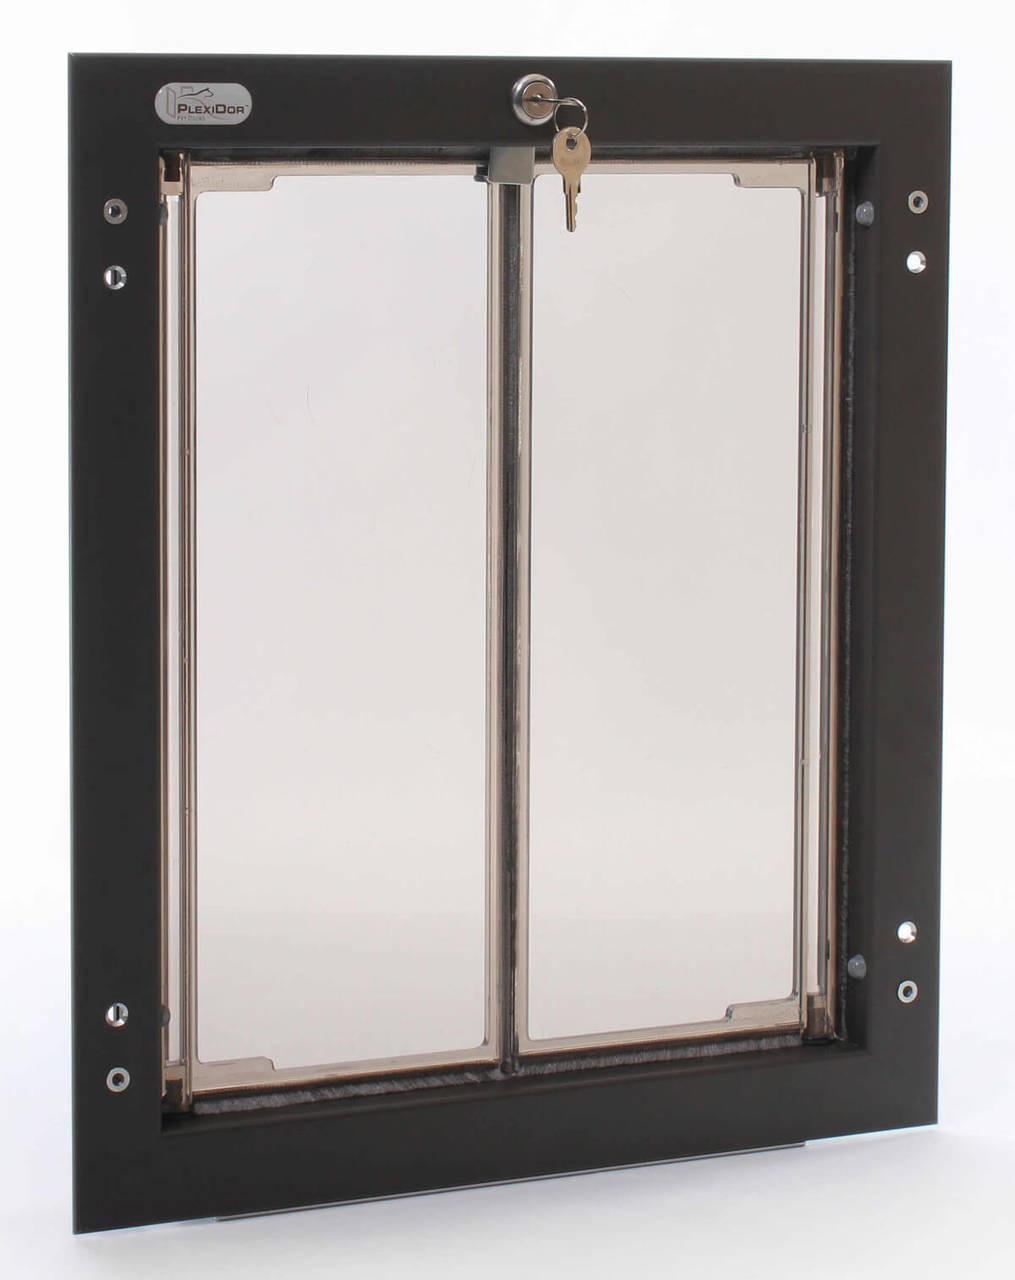 Genial Plexidor Dog Doors Have Saloon Style Double Flaps That Meet In The Center  In The Medium